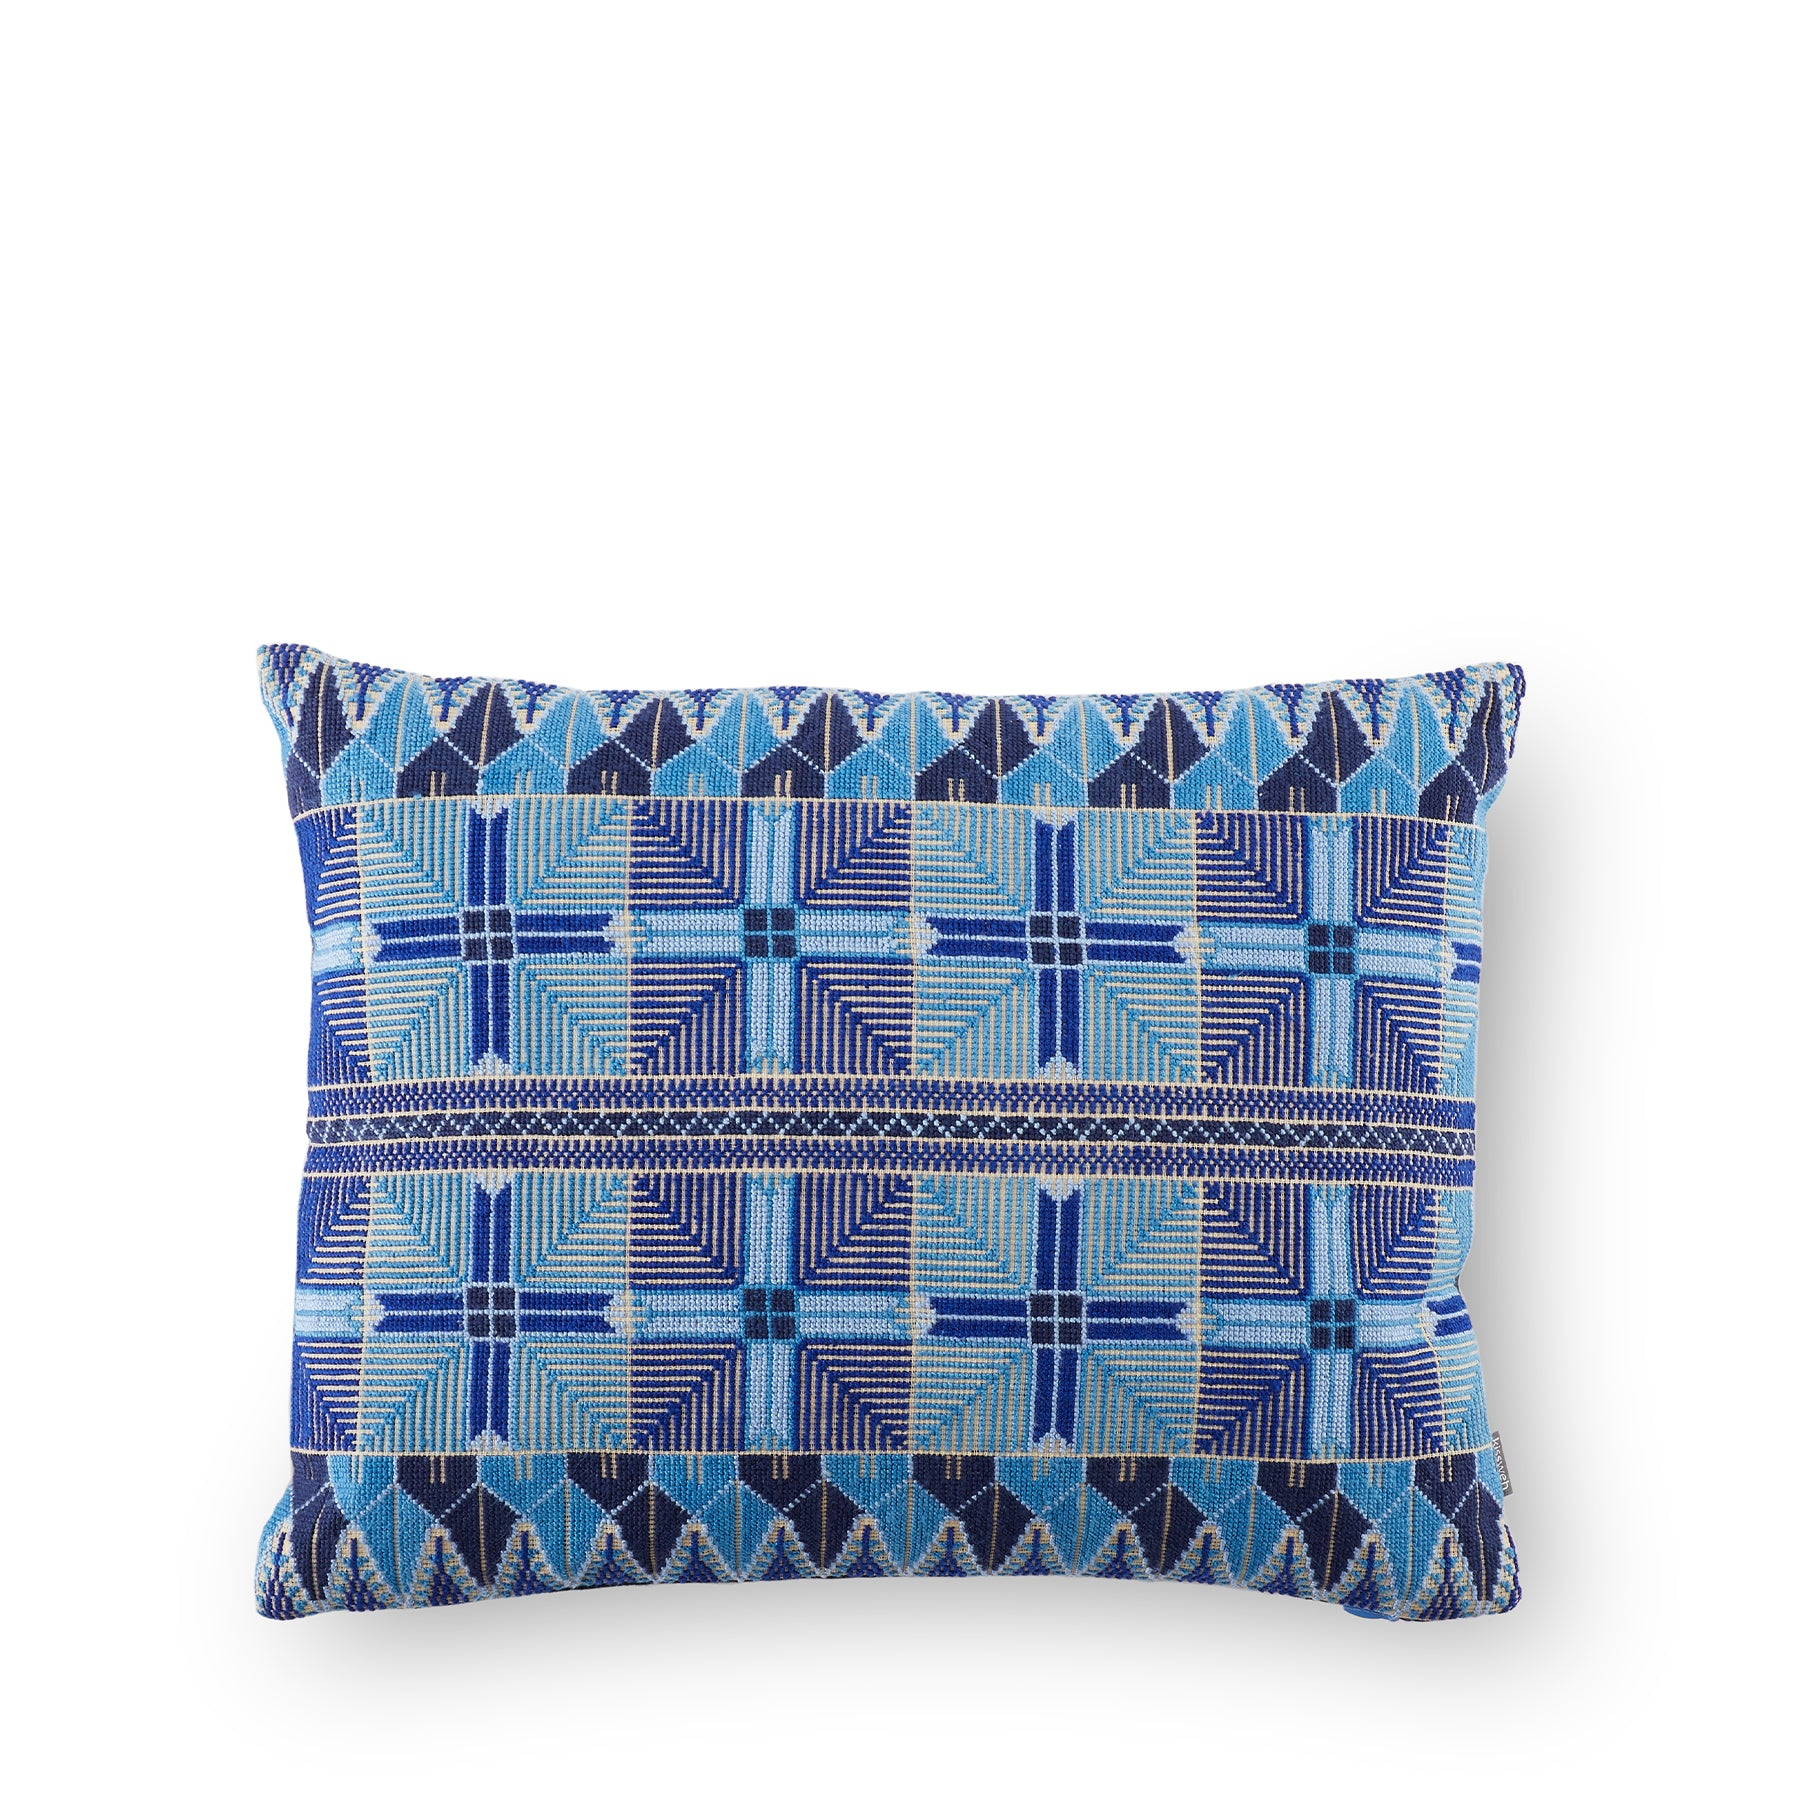 Ensaf Pillow in Blue Zoom Image 1